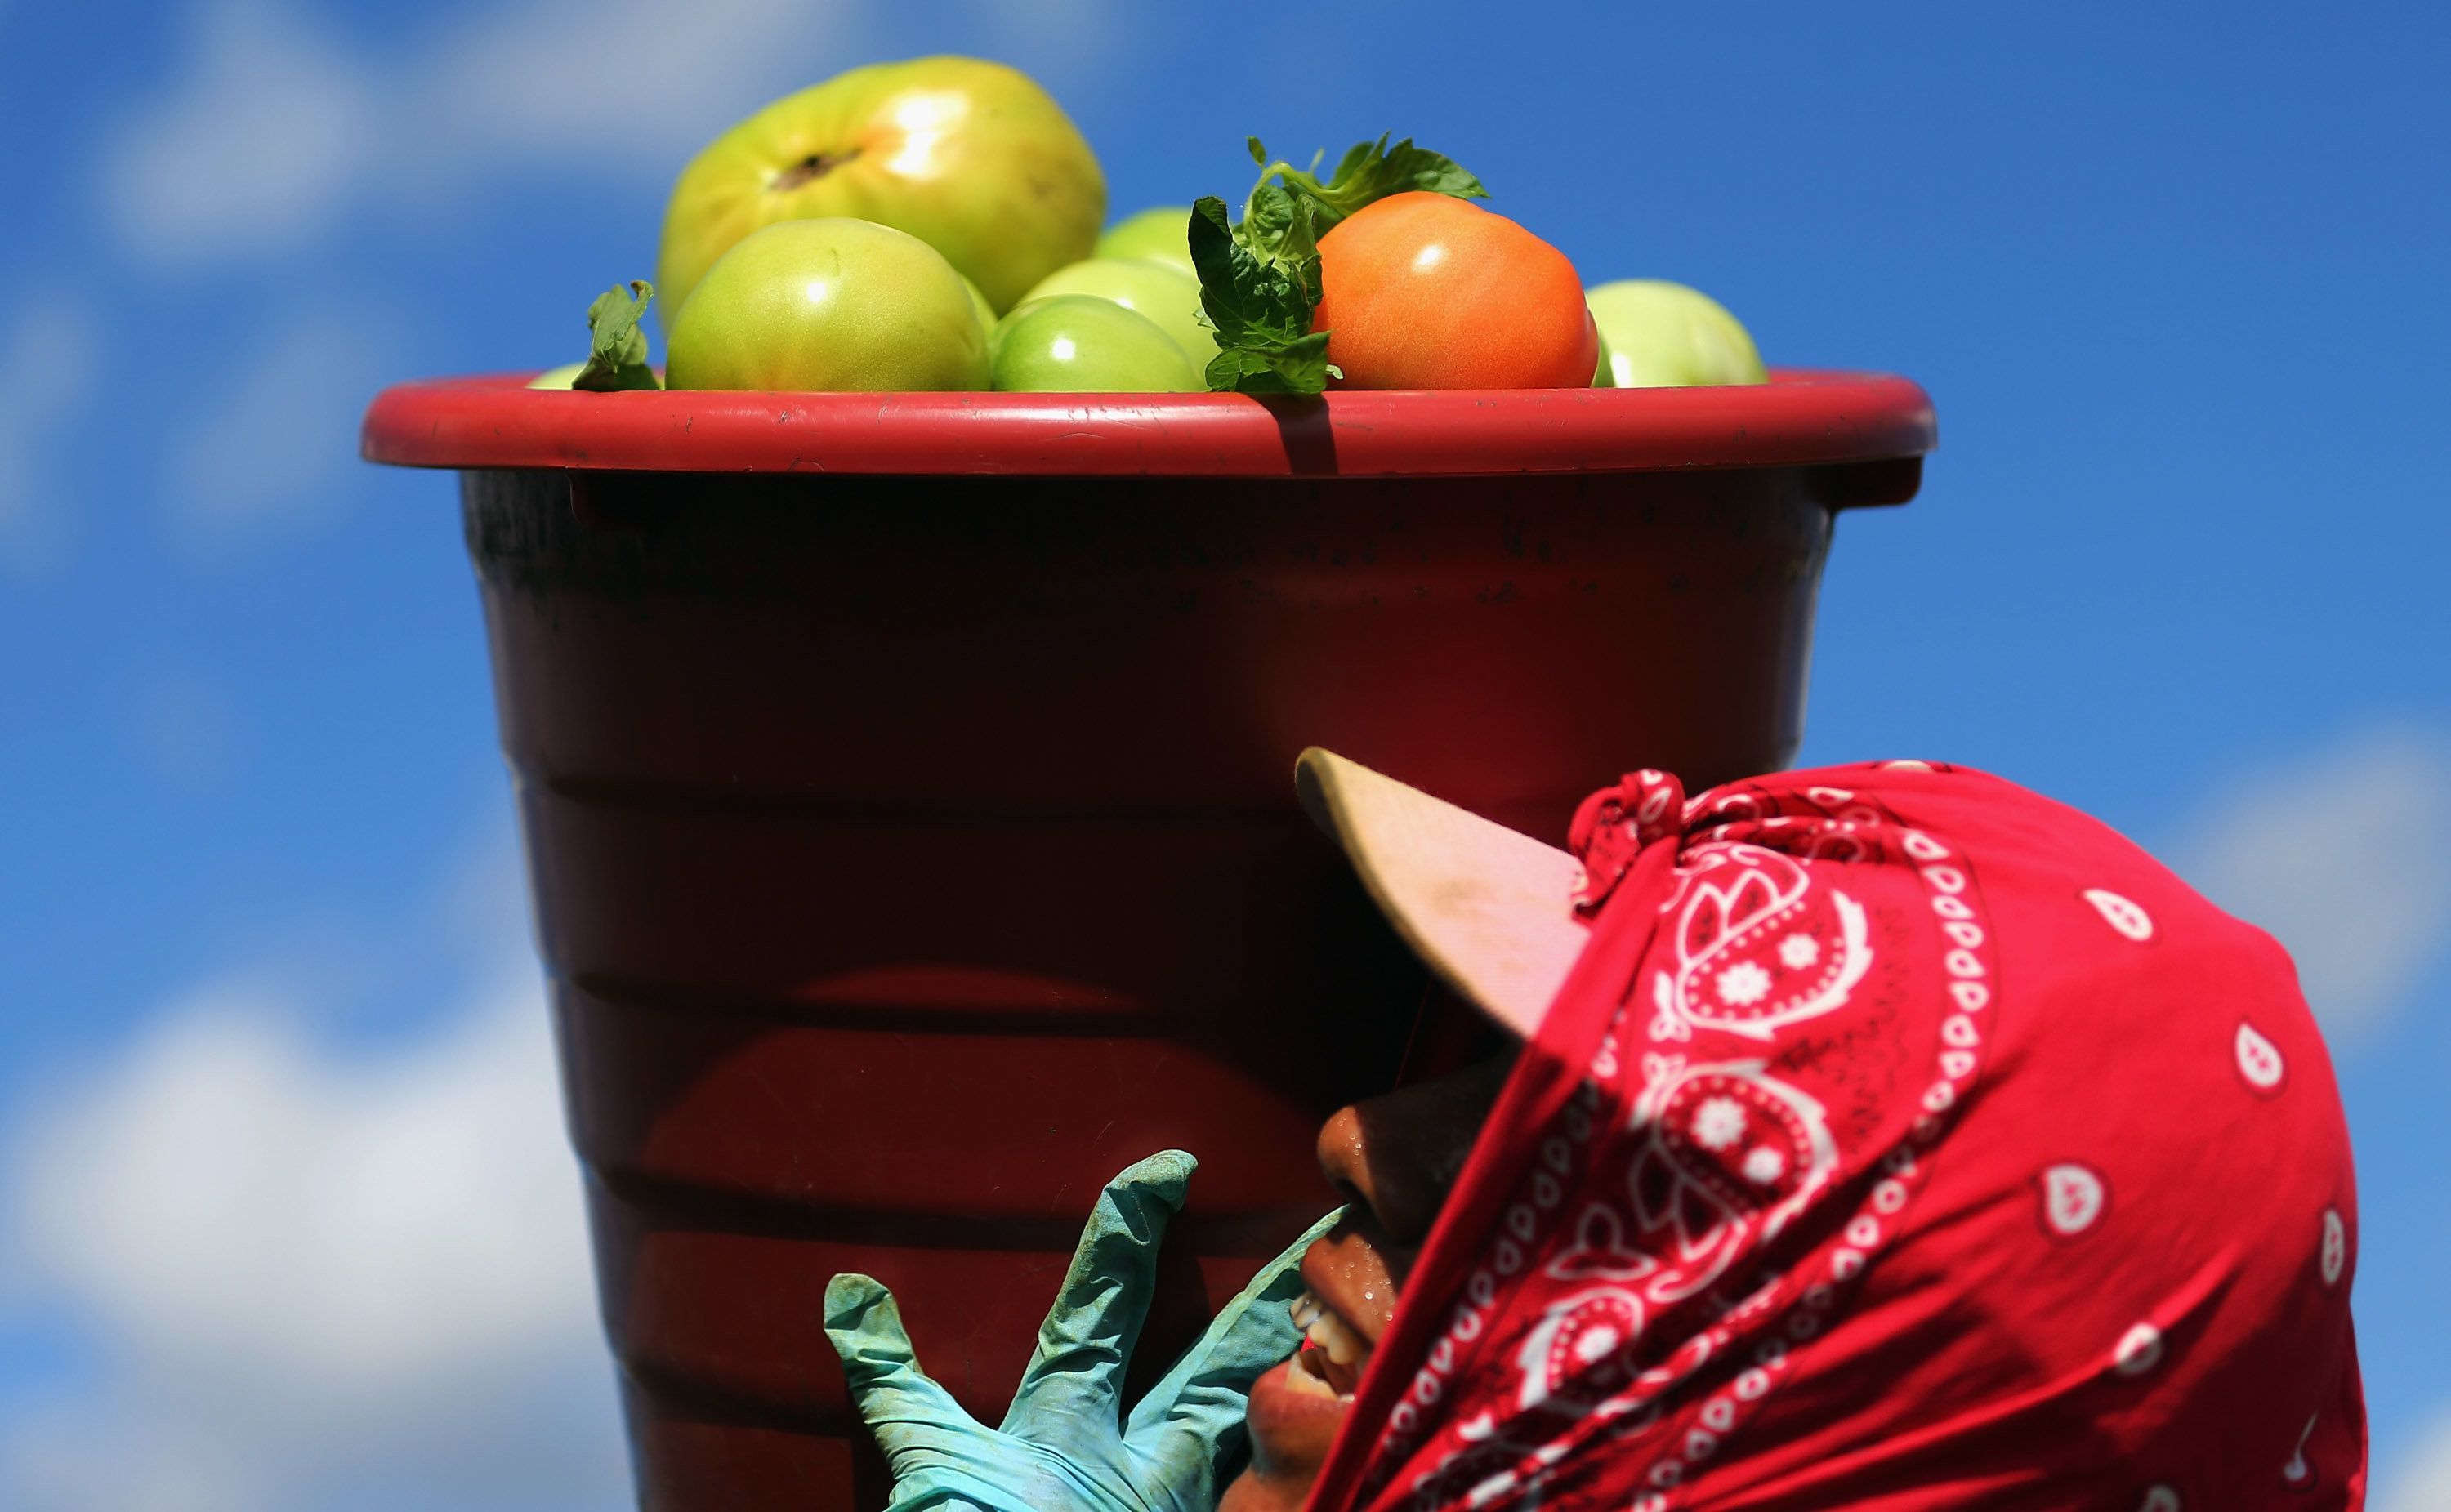 A worker carries a bucket of tomatoes in Florida City, Florida.